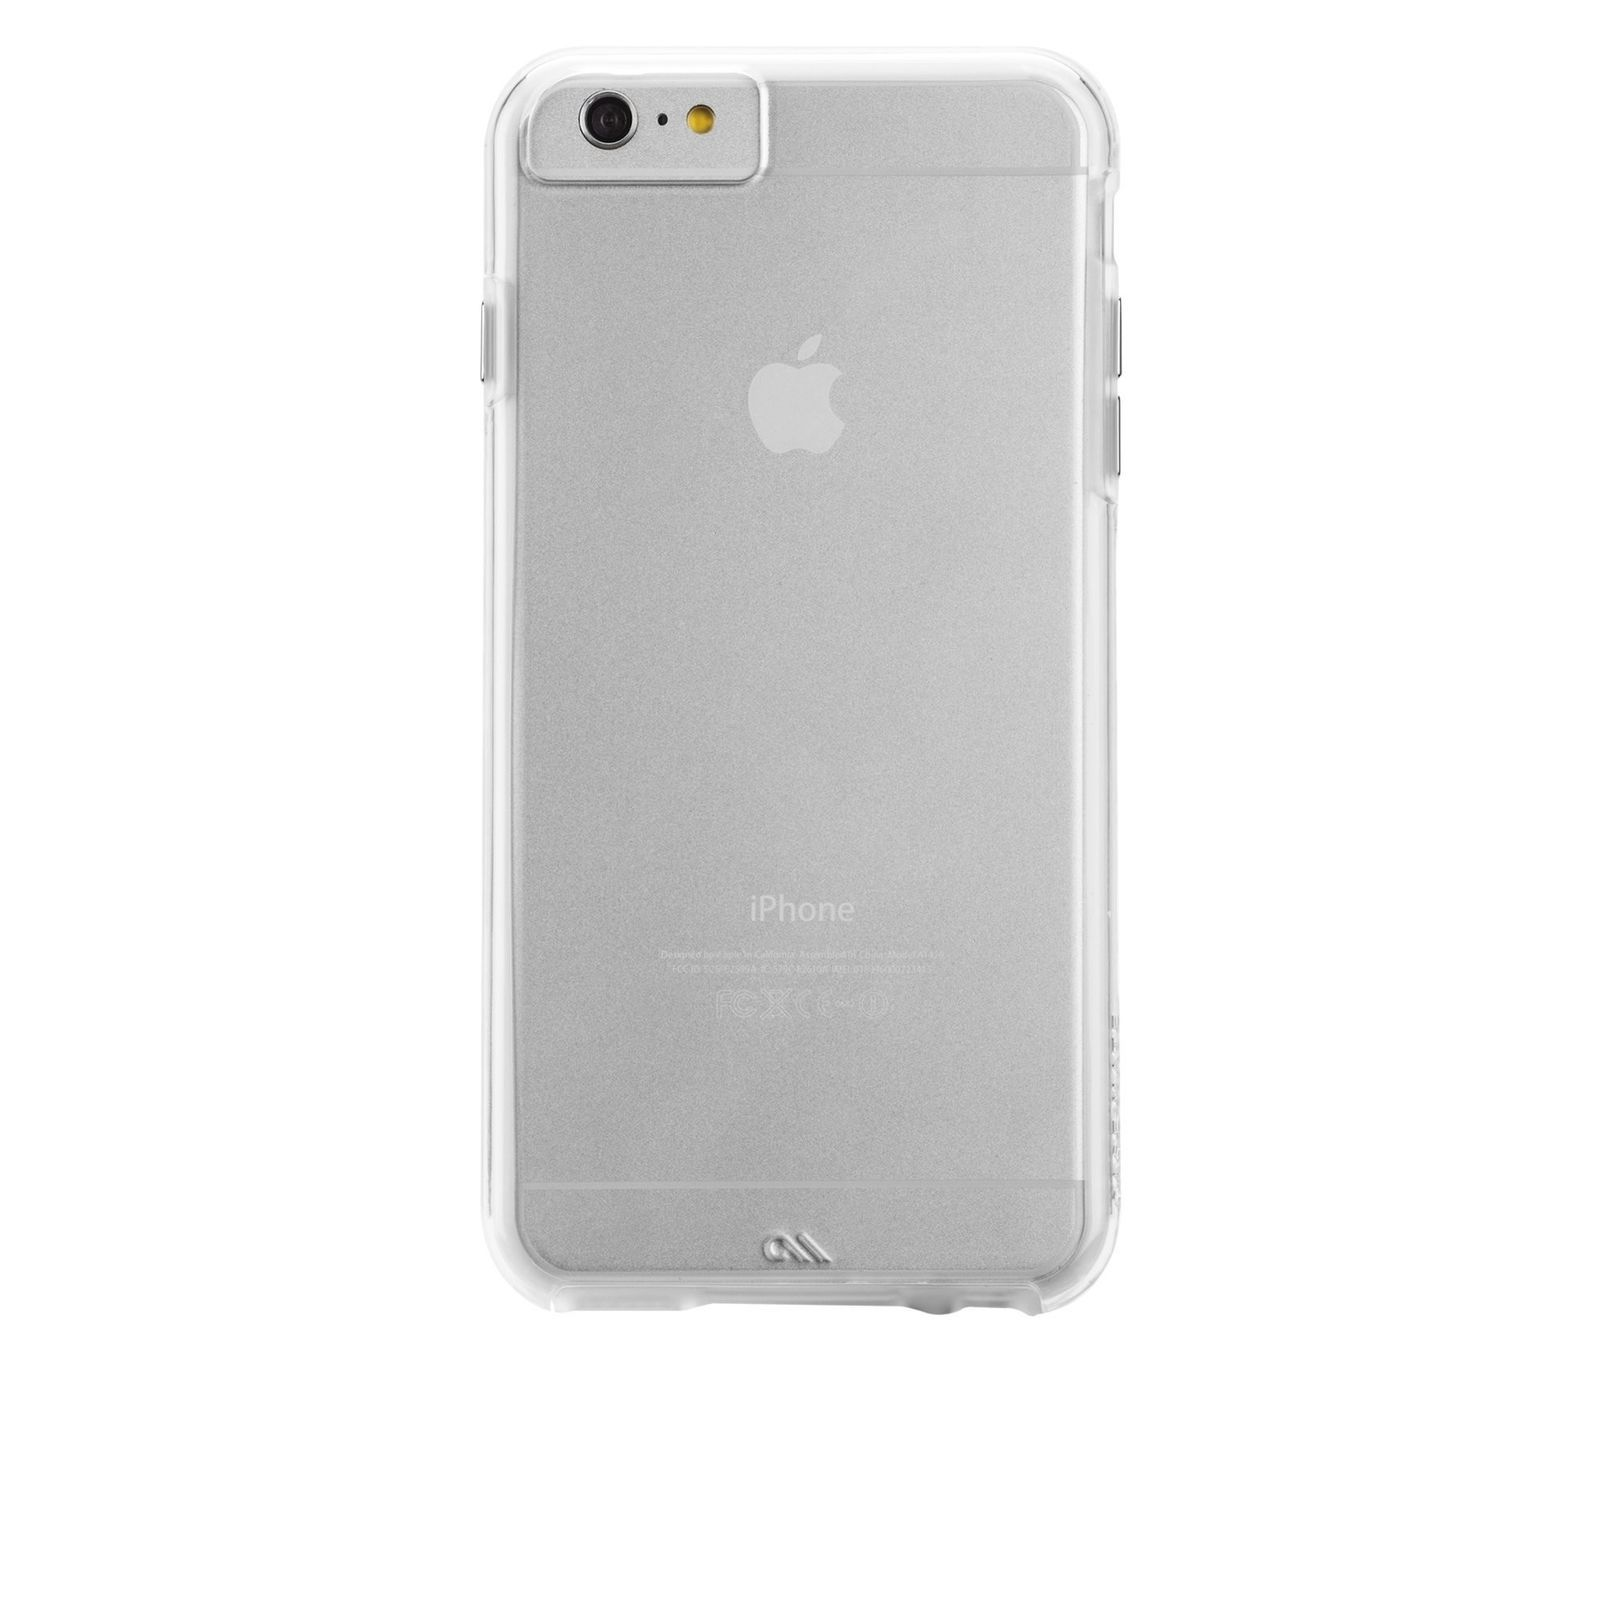 buy popular feda6 7b425 Case-Mate iPhone 6 Plus Case - NAKED TOUGH - Clear - Slim Protective ...